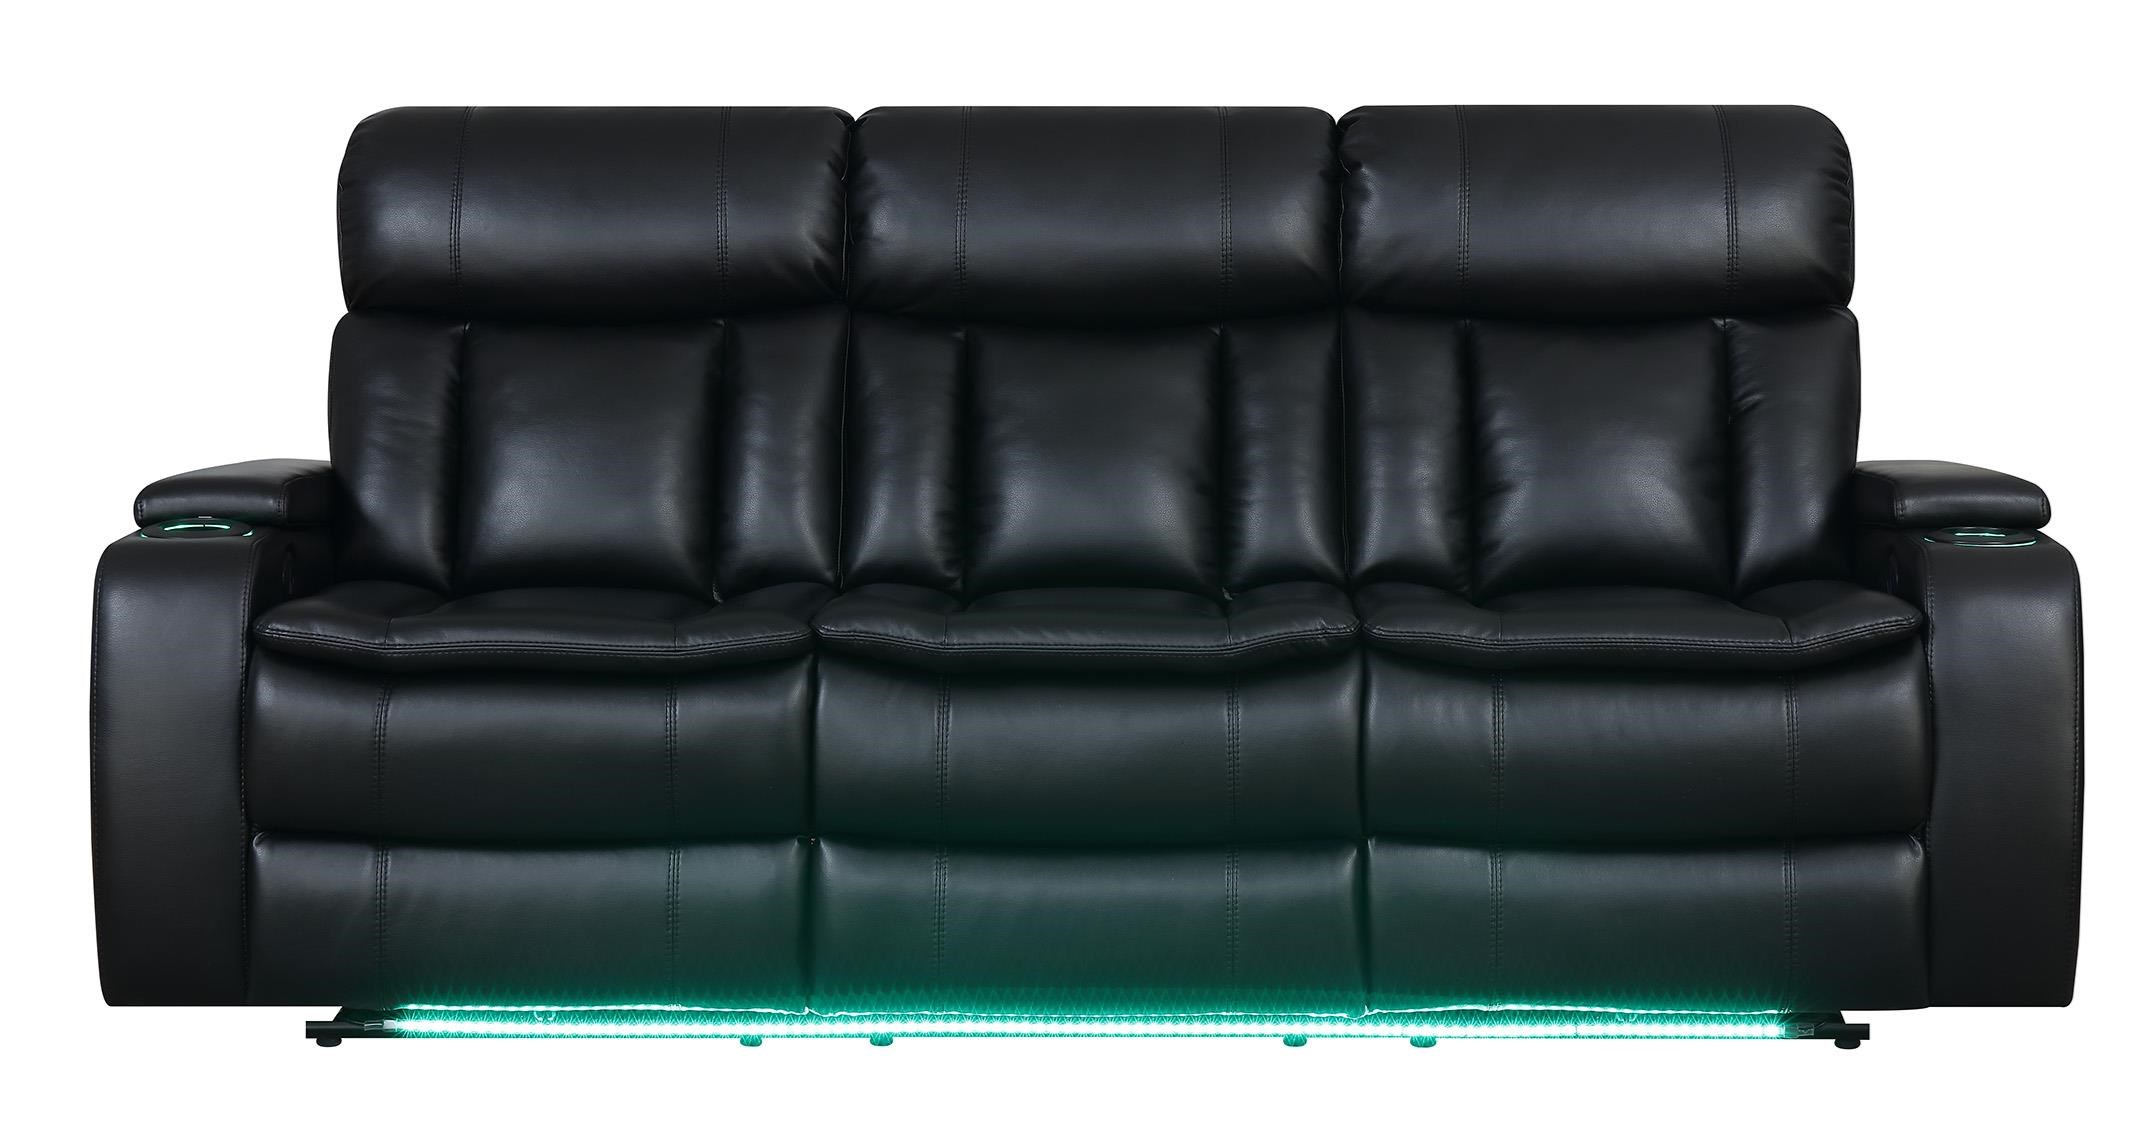 Vogue Home Furnishings PX3003 Reclining Sofa - Item Number: PX3003-03-N2